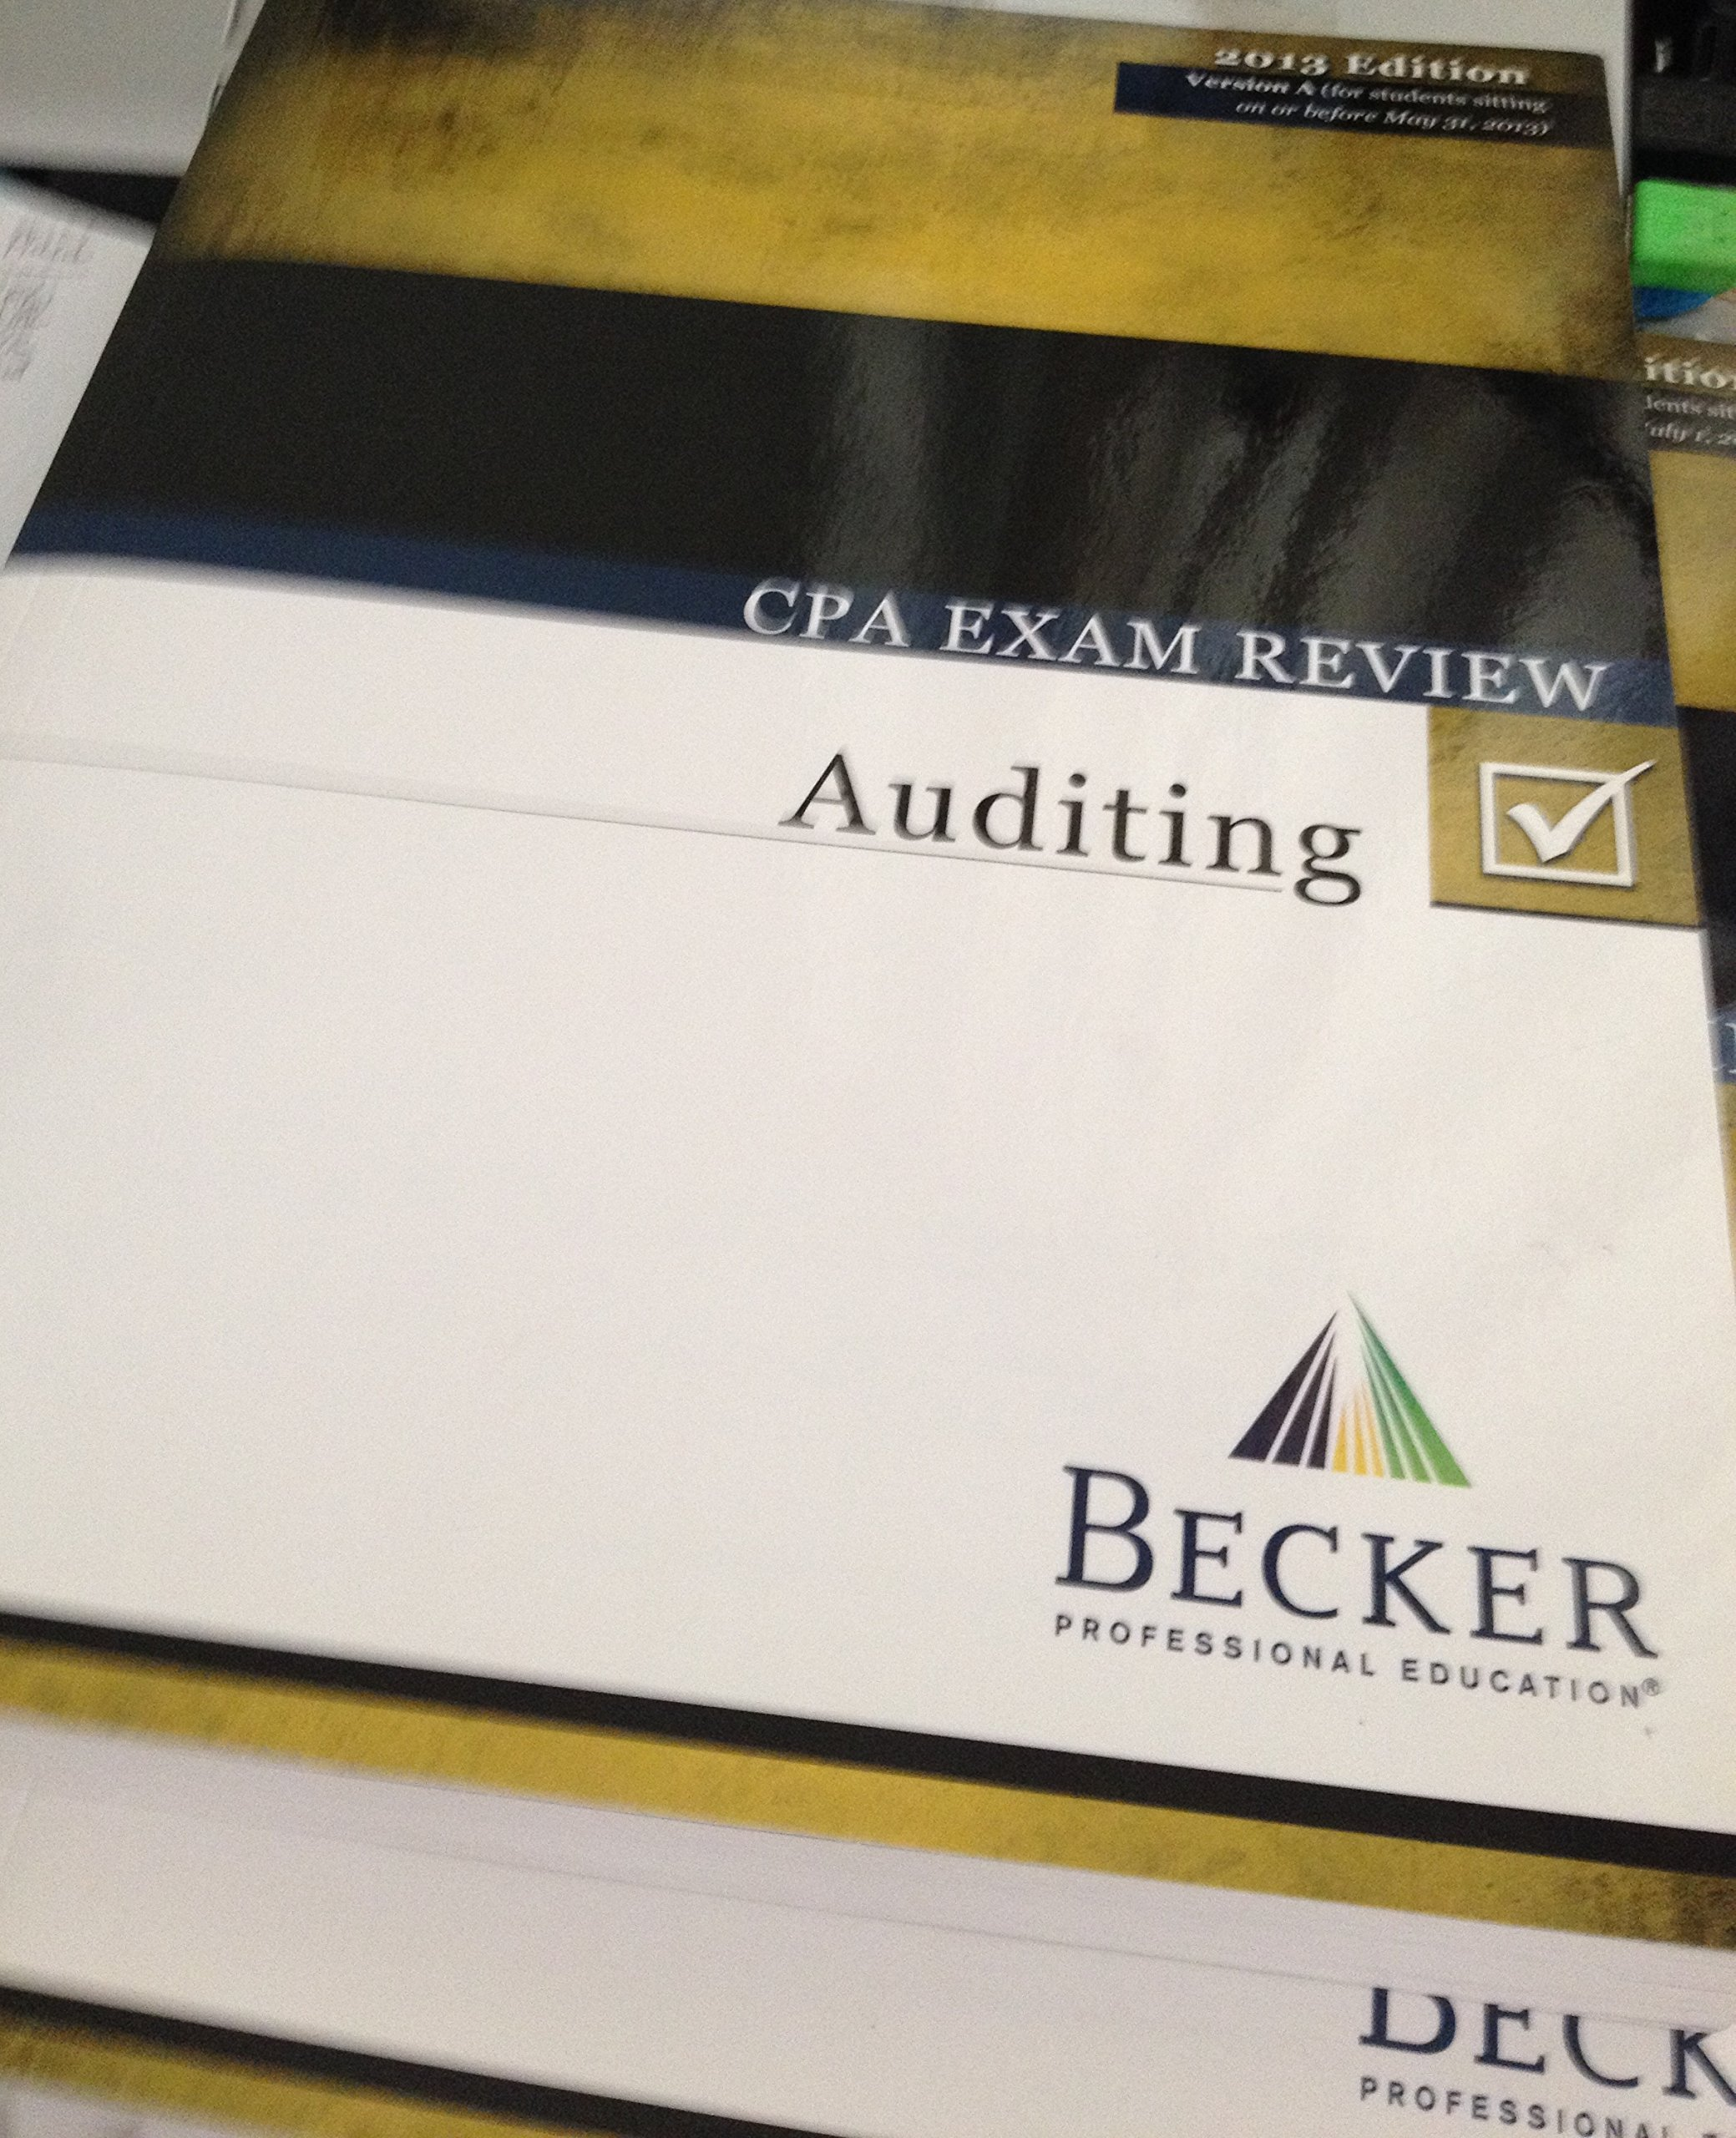 Becker cpa exam review auditing 2013 edition becker professional becker cpa exam review auditing 2013 edition becker professional education 9780003186253 amazon books fandeluxe Choice Image